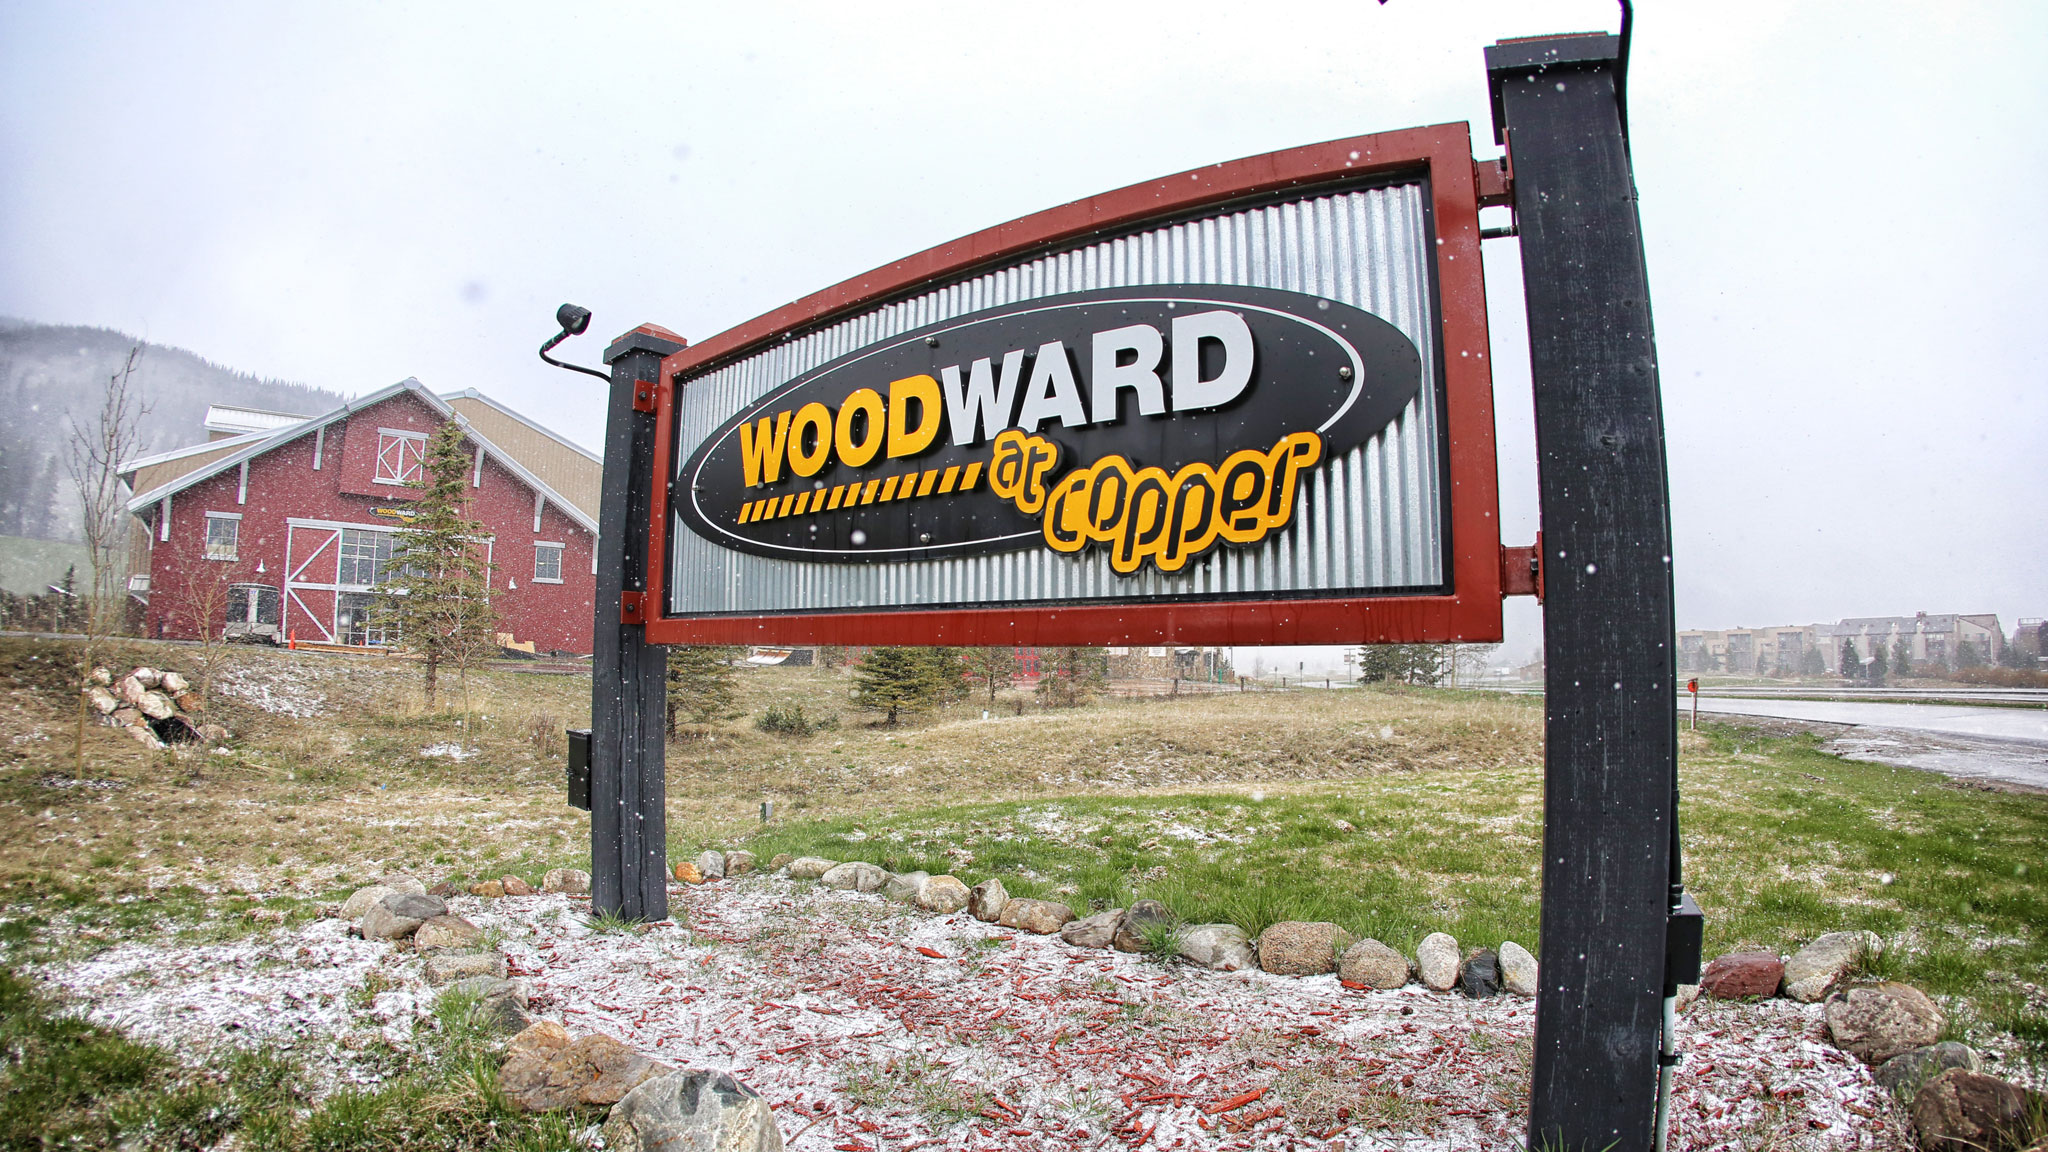 Woodward at Copper reopened this weekend after a major renovation.